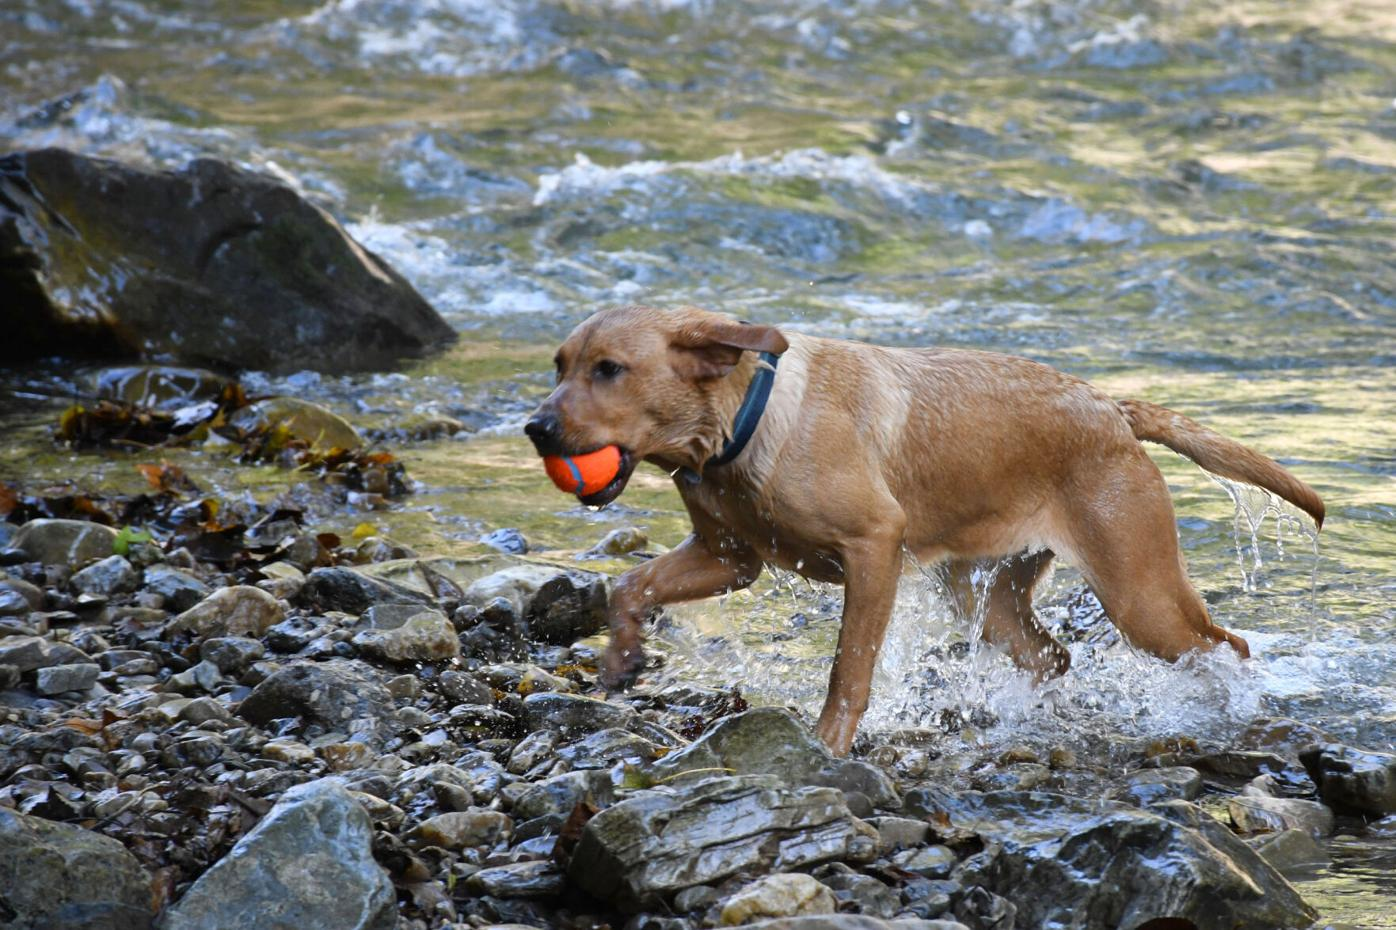 Dog comes out of river with ball in mouth